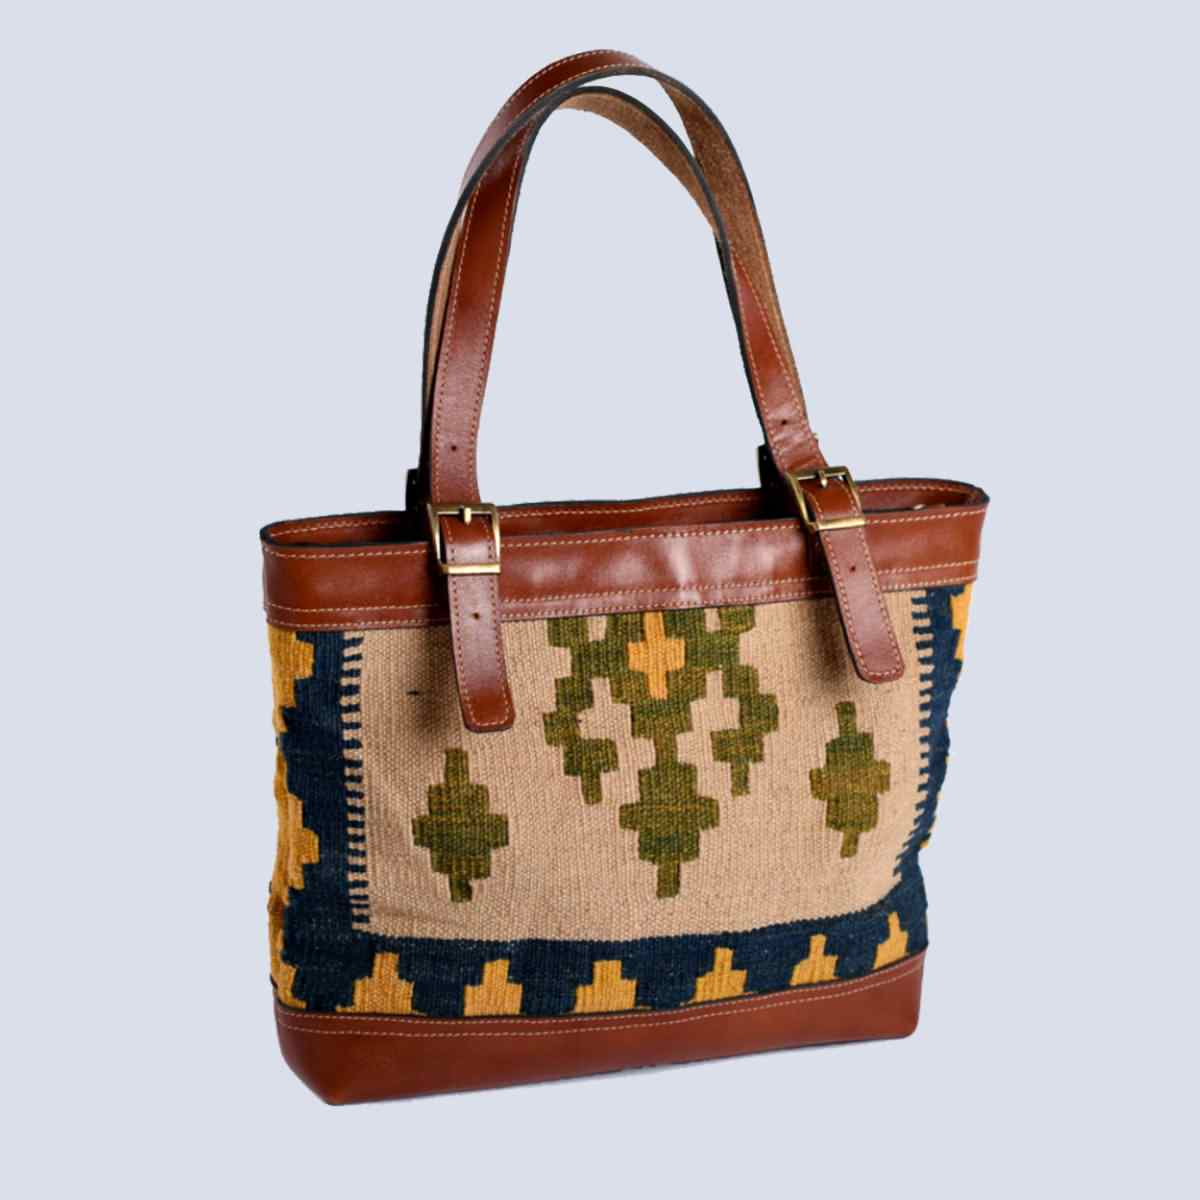 Handmade Vintage Kilim Leather Brown Tote Bag